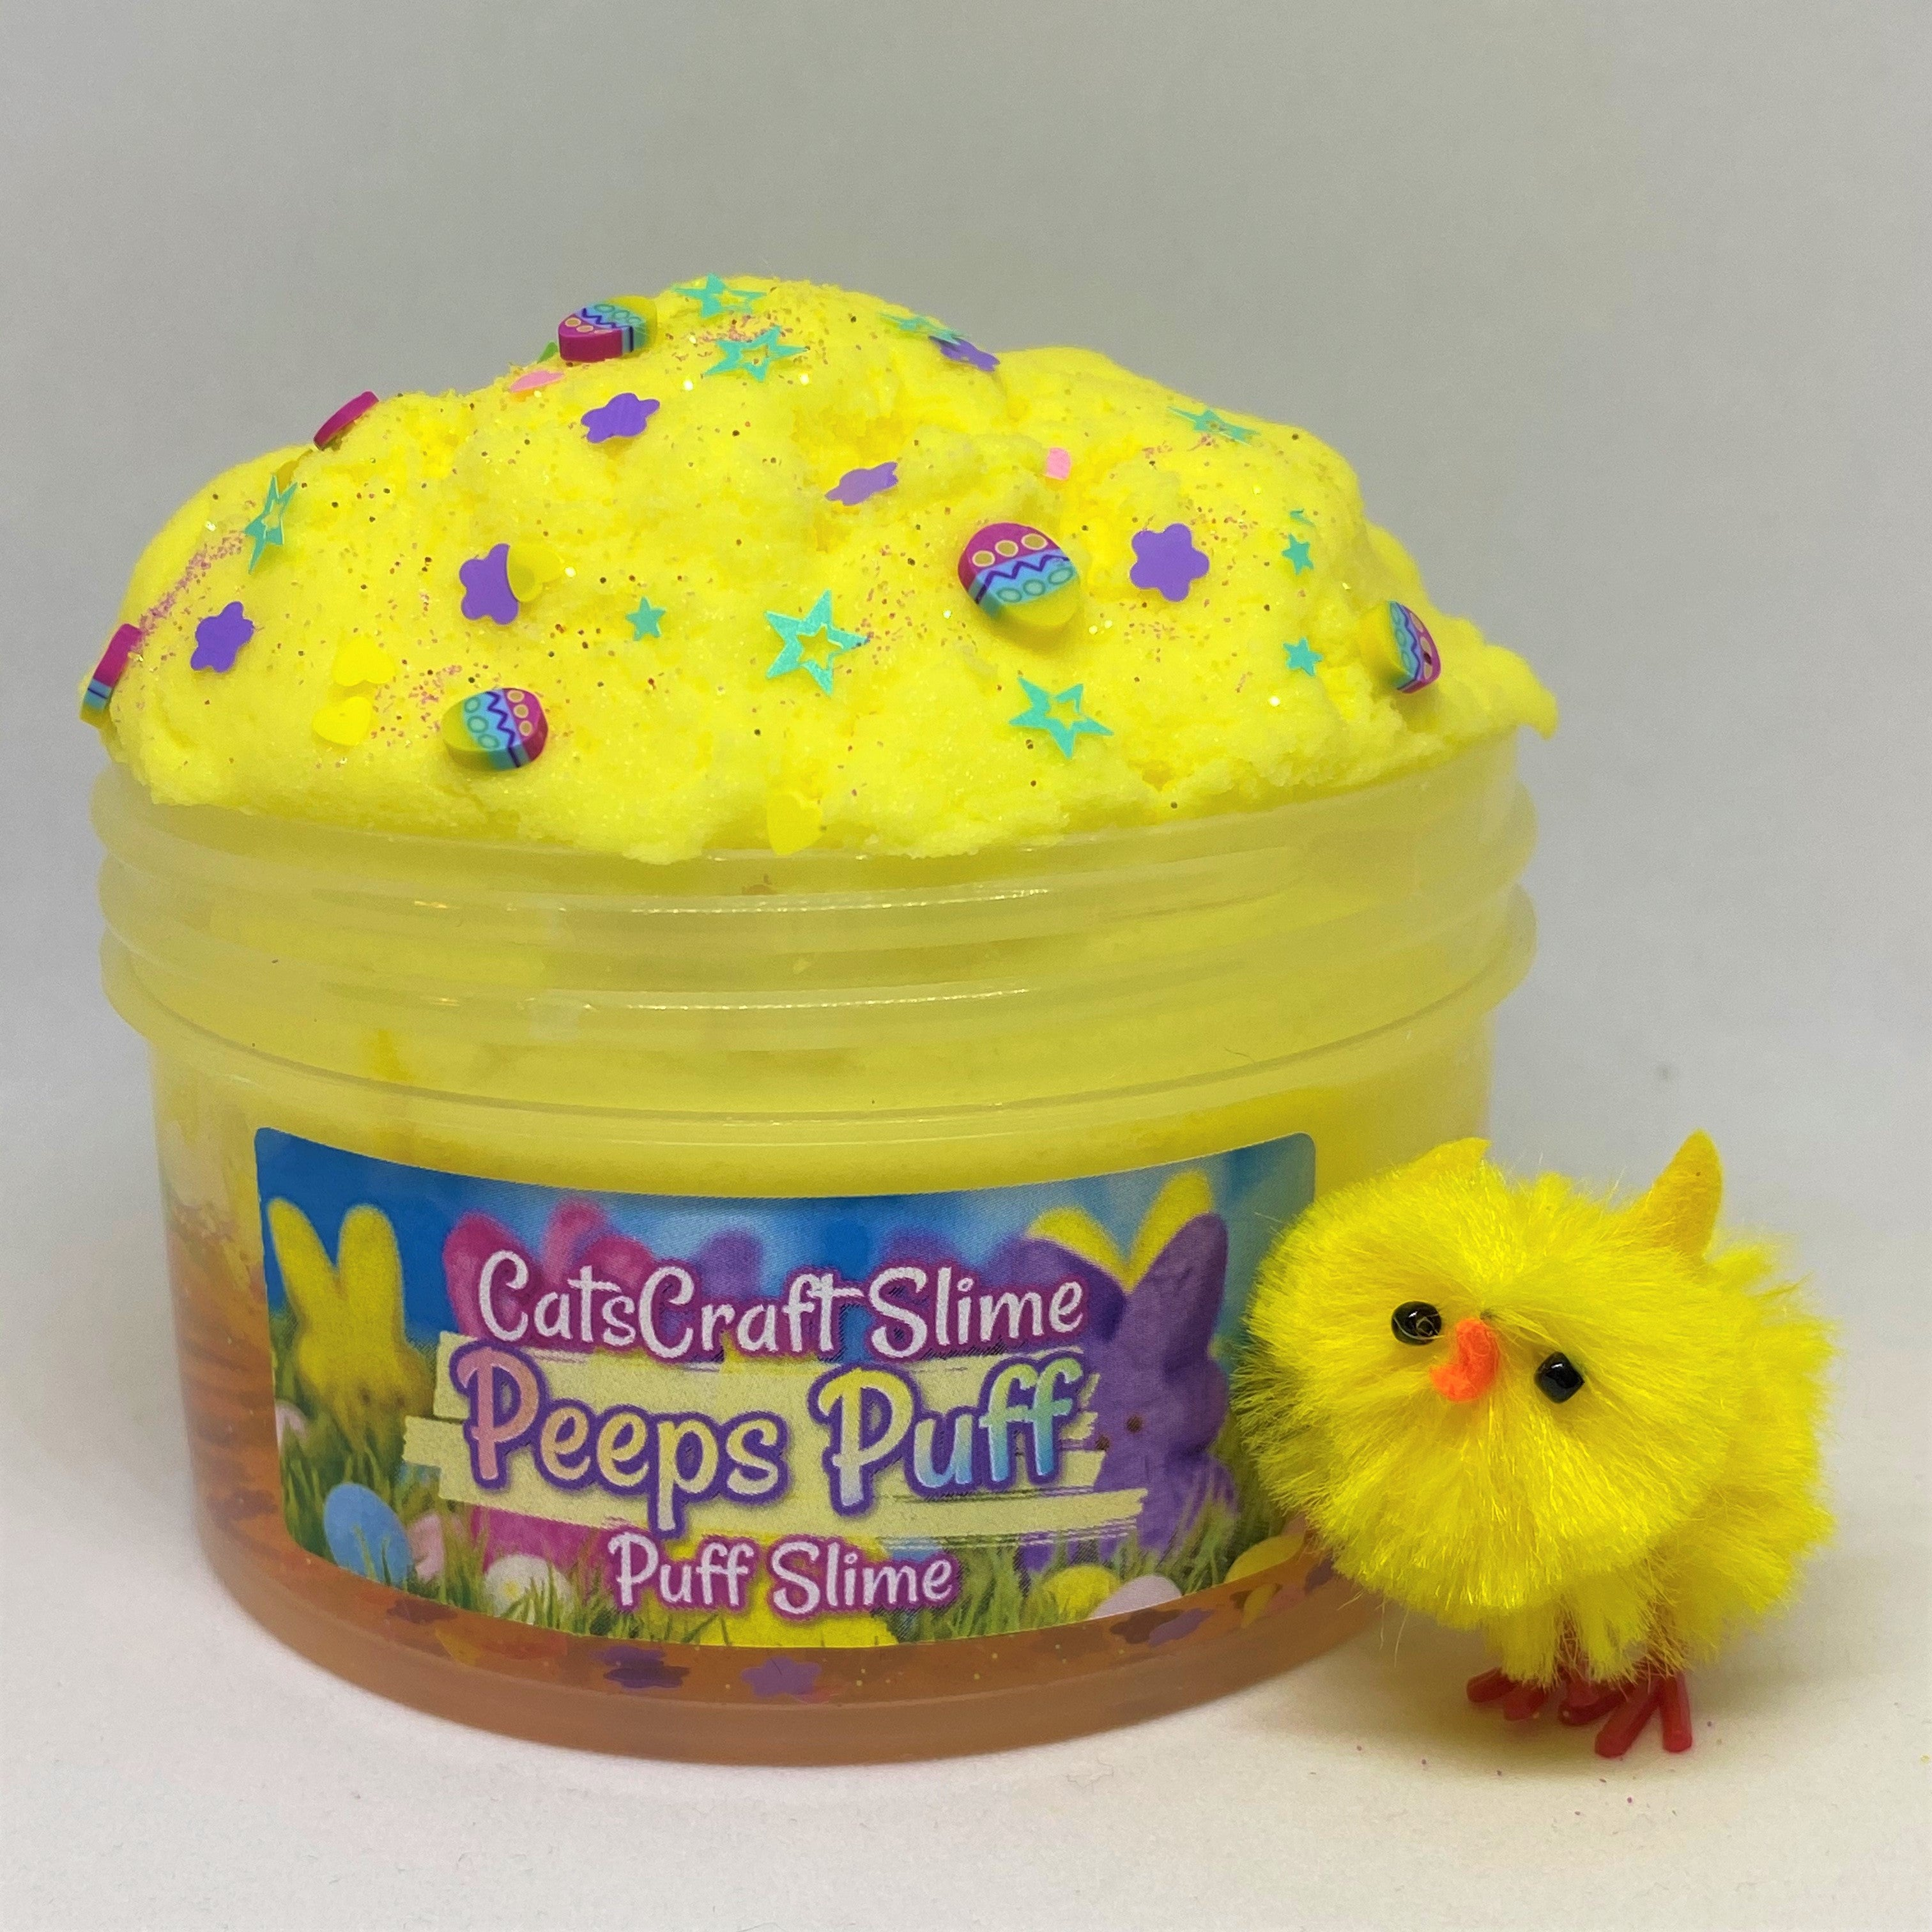 "Puff Slime ""Peeps Puff"" Scented Yellow Clear Slime with charm ASMR 6 8 oz Easter"